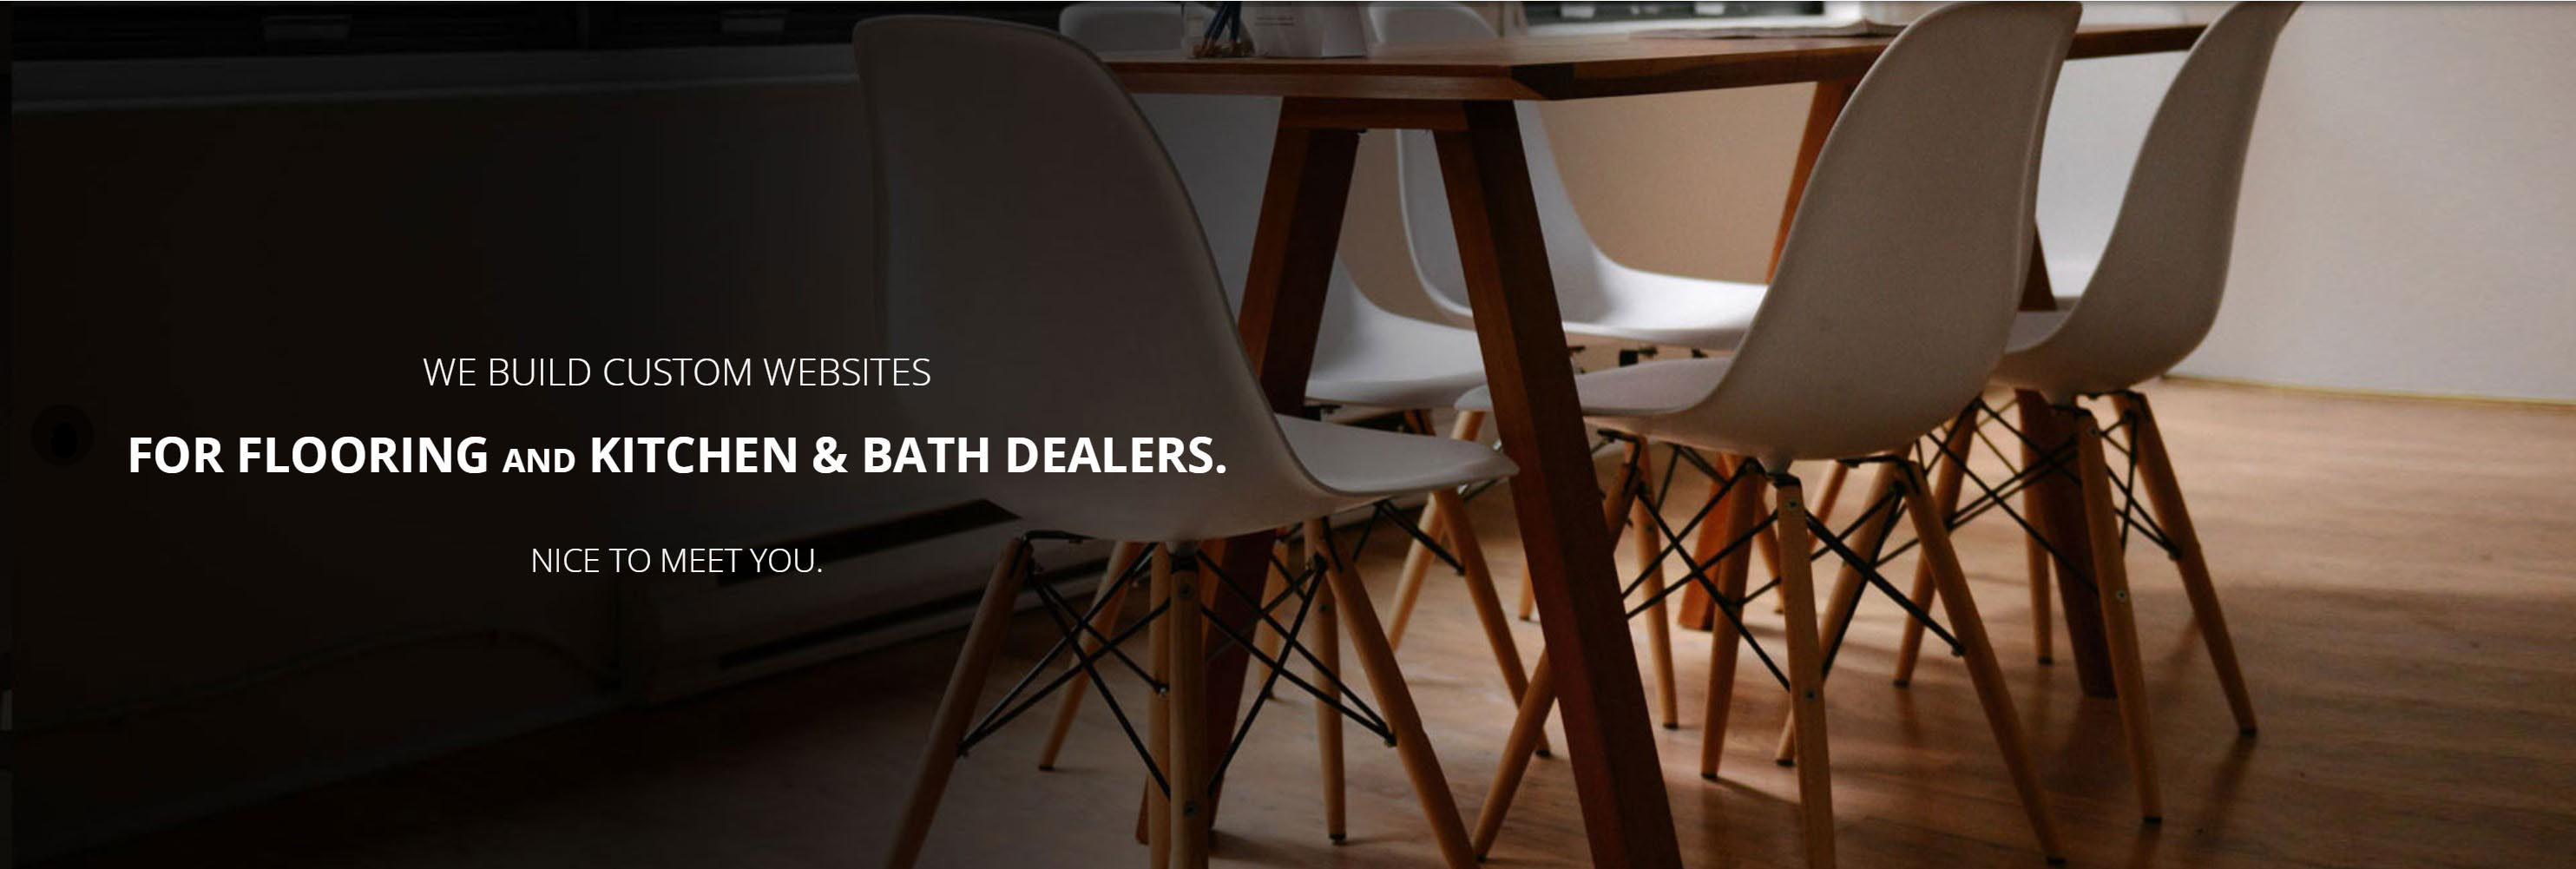 We Build Custom Websites For Flooring and Kitchen & Bath Dealers.